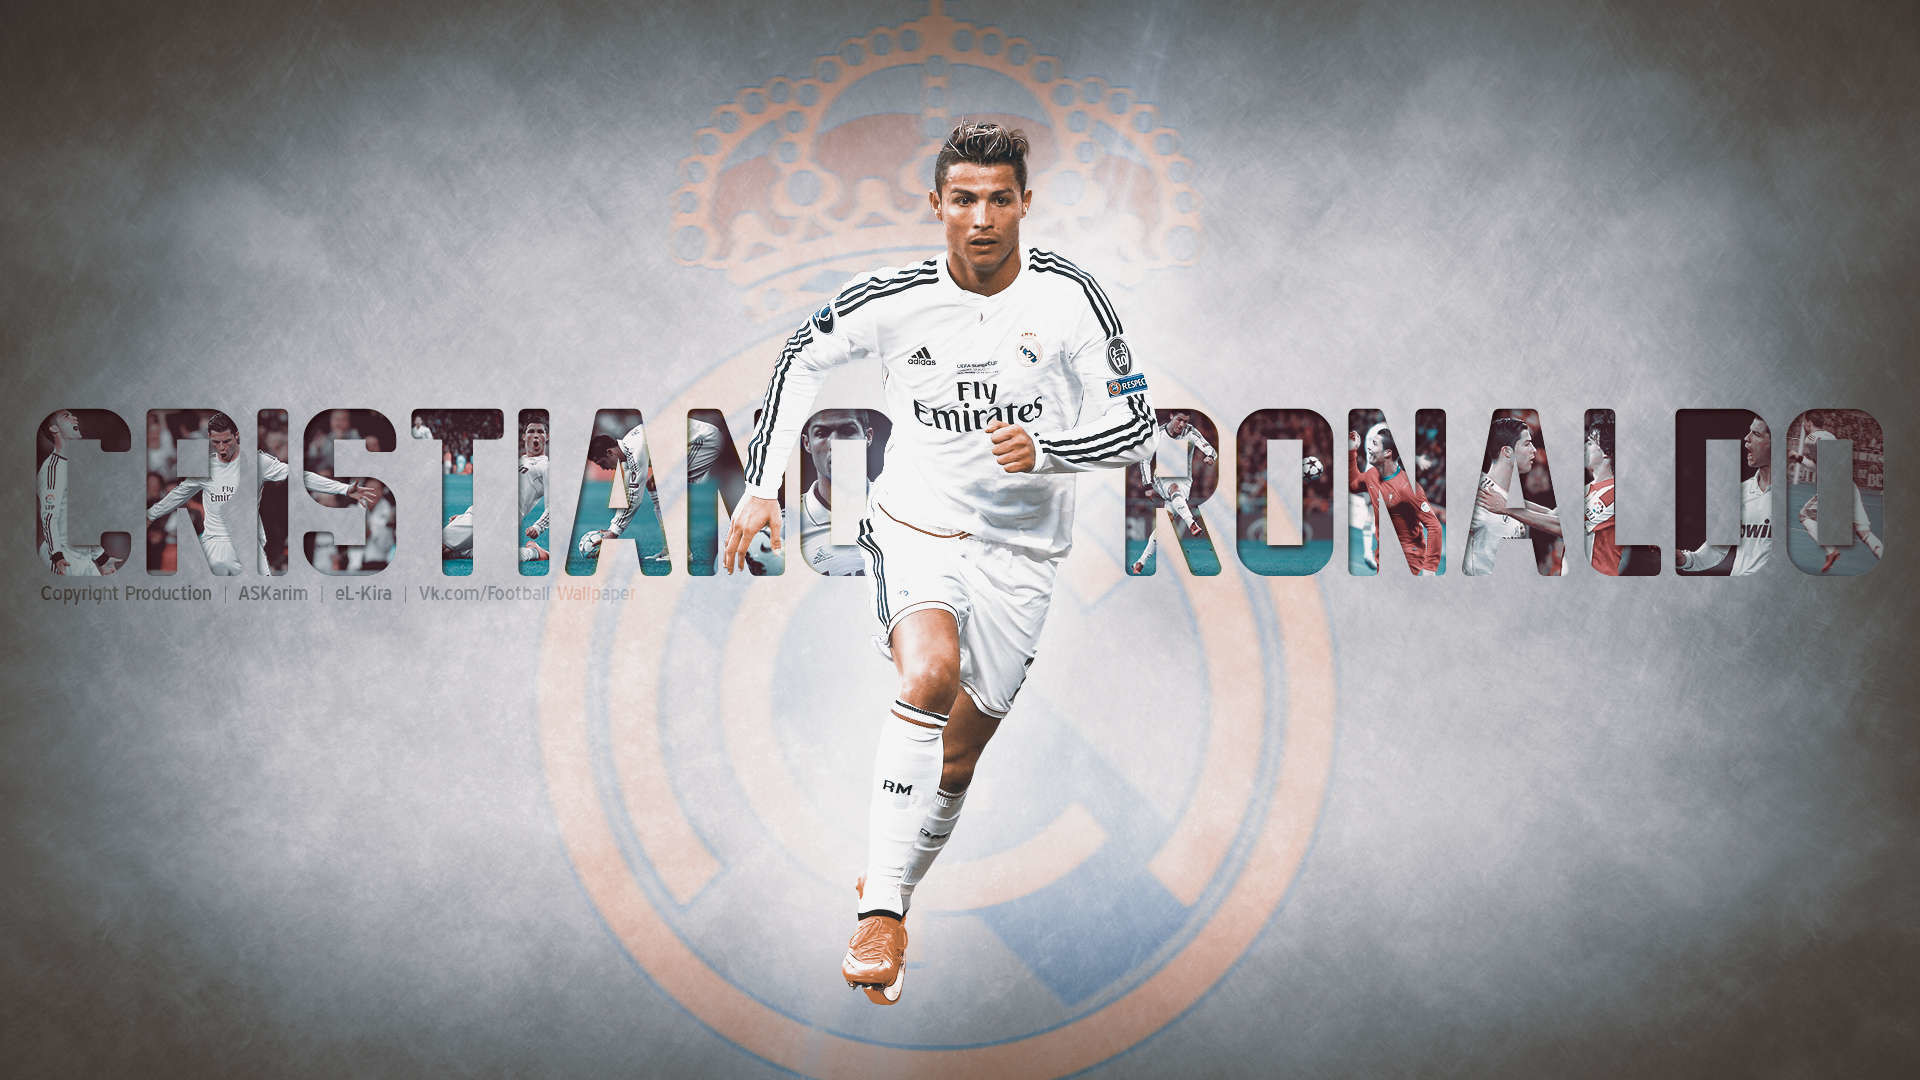 Cristiano Ronaldo 2016 Wallpaper – HD Wallpapers Backgrounds of Your .